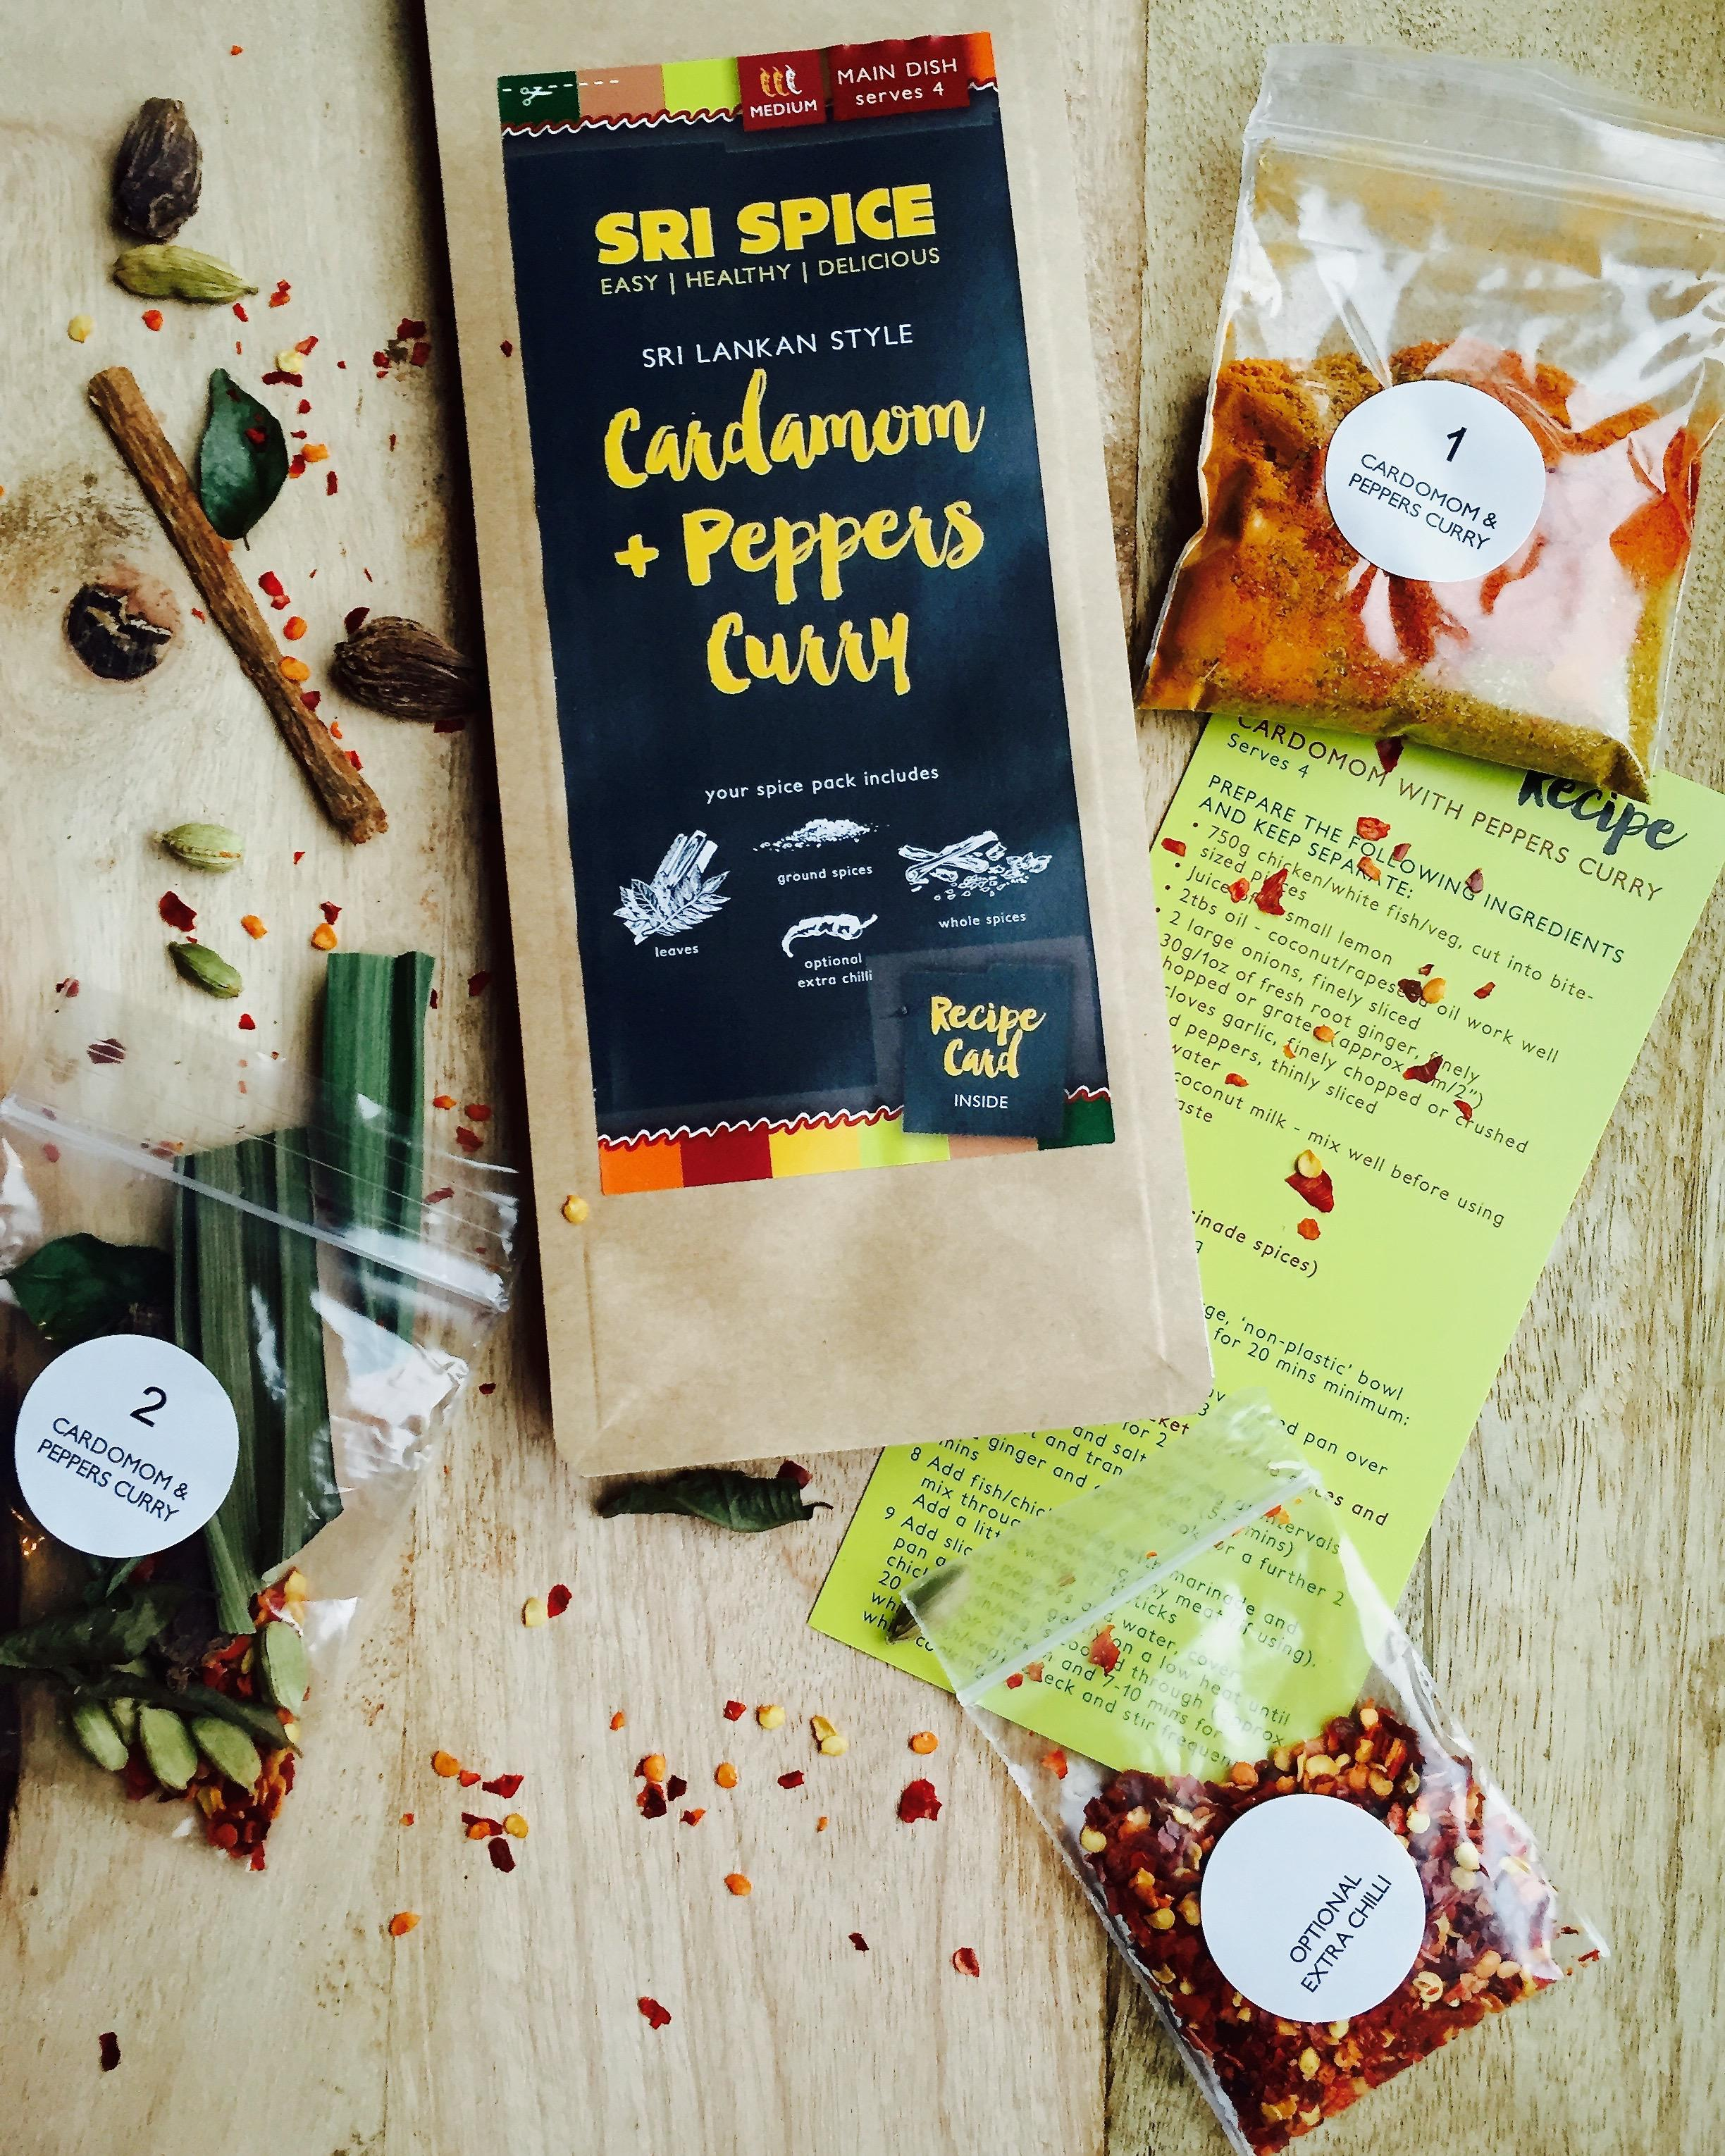 Cardamom and Peppers Curry kit with spices on a board